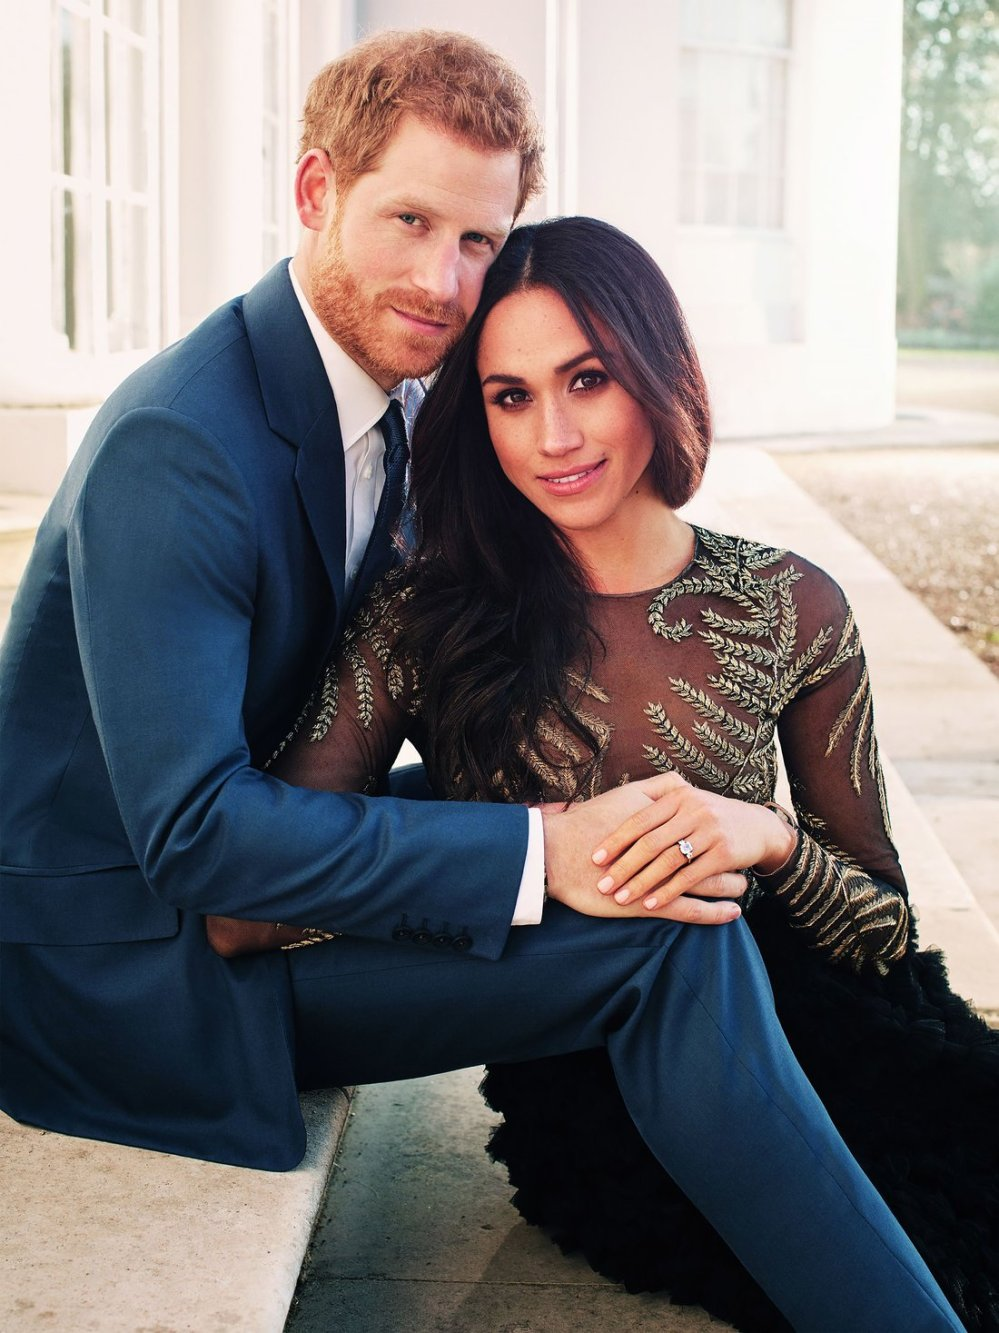 Prince Harry and Meghan Markle official engagement photos, Frogmore House, Windsor, UK - 21 Dec 2017